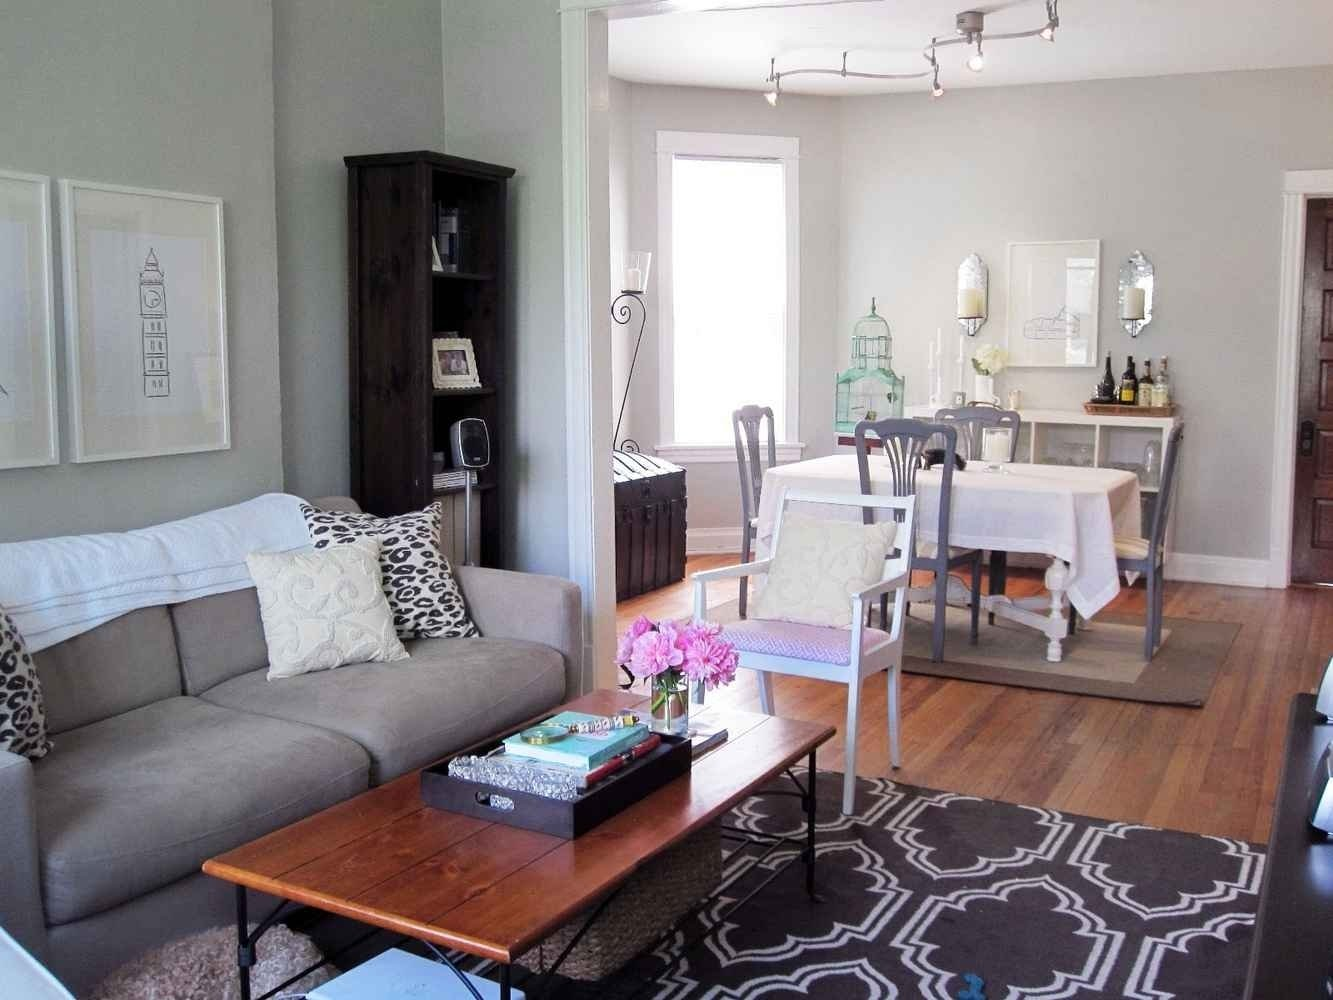 10 Ideal Living Room Dining Room Combo Decorating Ideas small living room dining room combo decorating ideas style perfect 2 2020